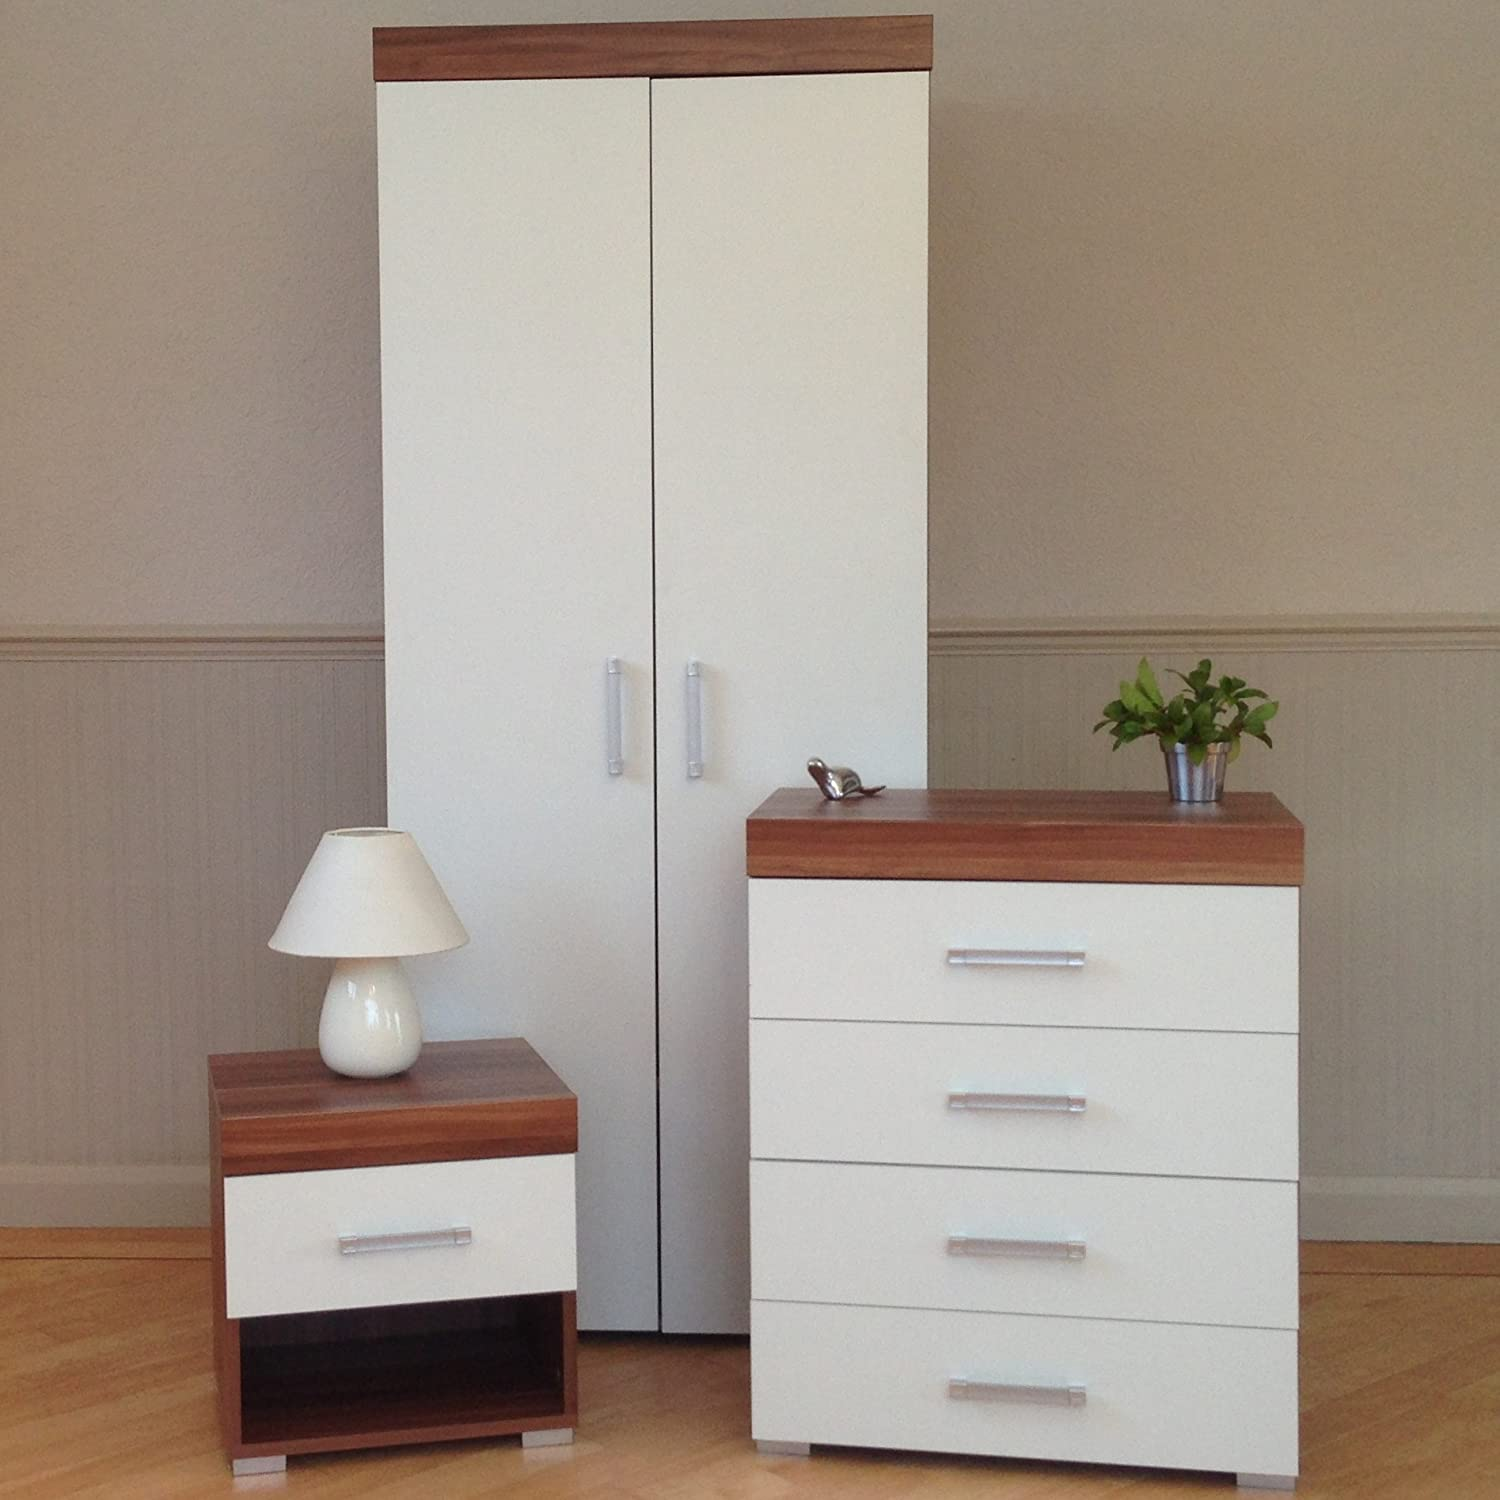 DRP Trading 3 Piece White & Walnut Bedroom Furniture Set! Wardrobe, 4 Drawer Chest, 1 Draw Bedside Table